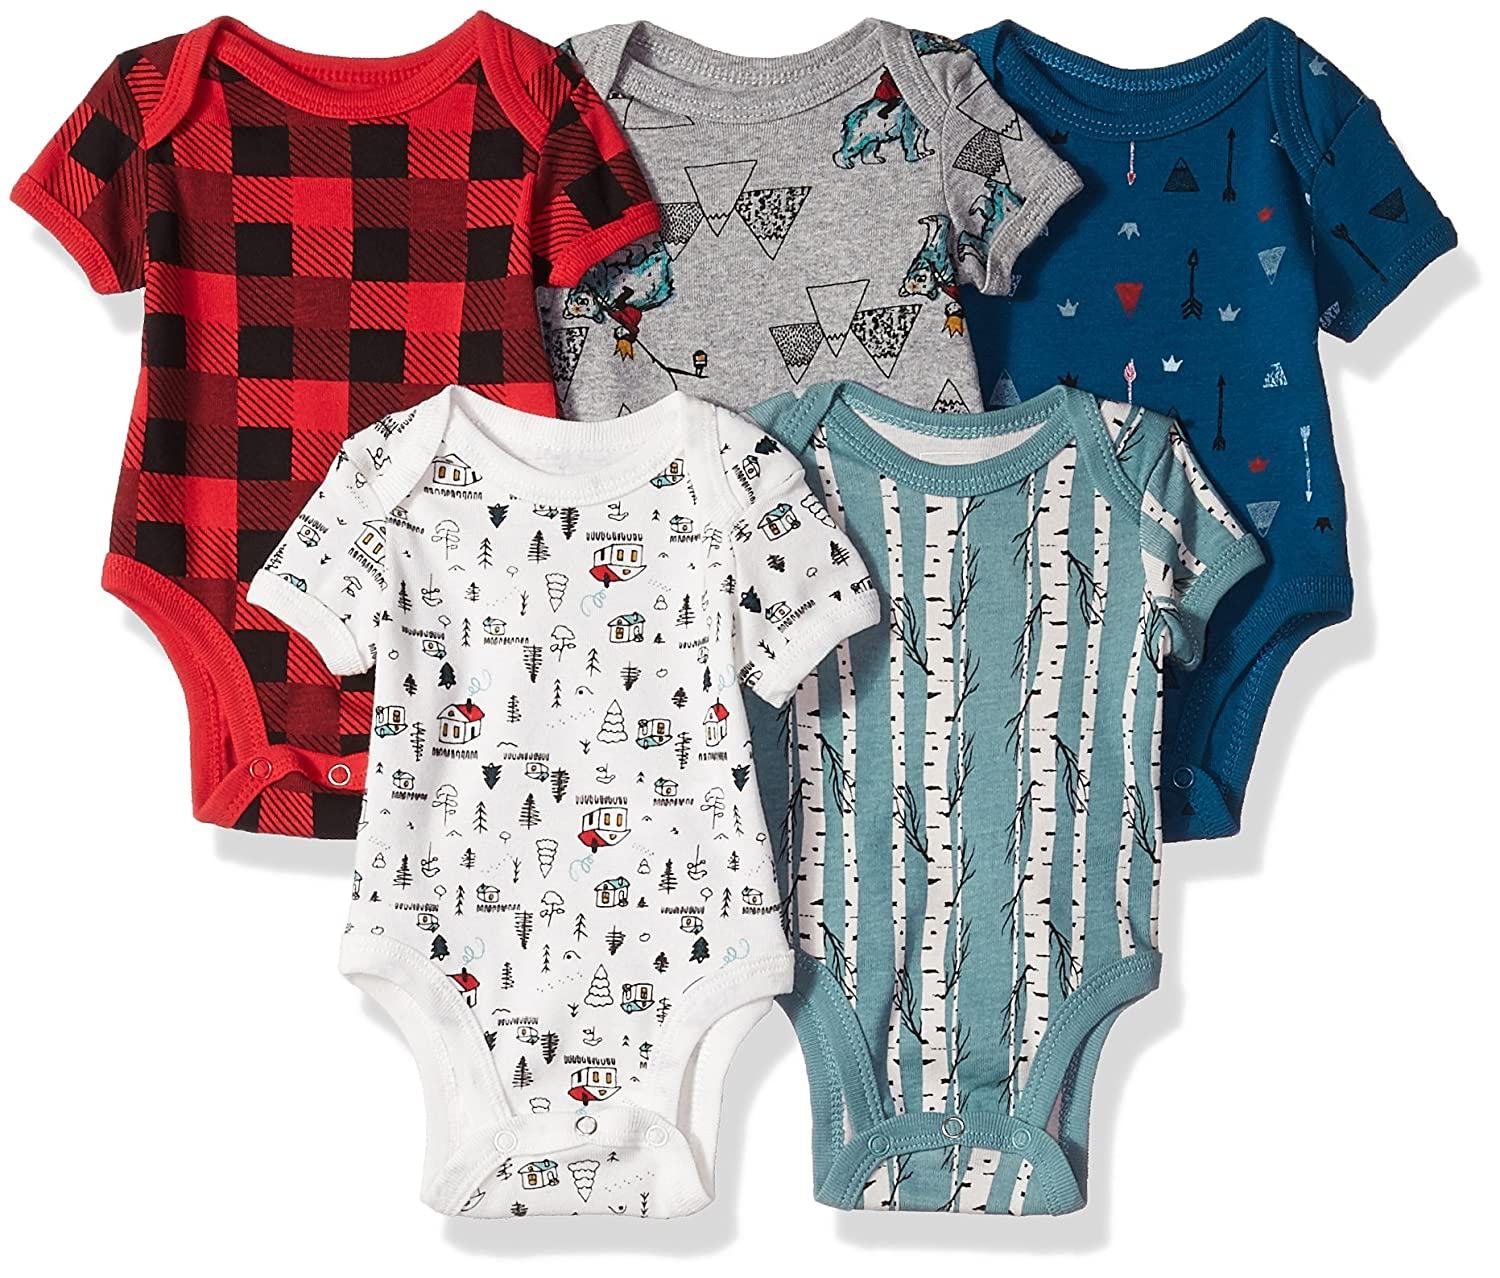 Amazon.com: Rosie Pope Baby 5 Pack Bodysuits: Clothing